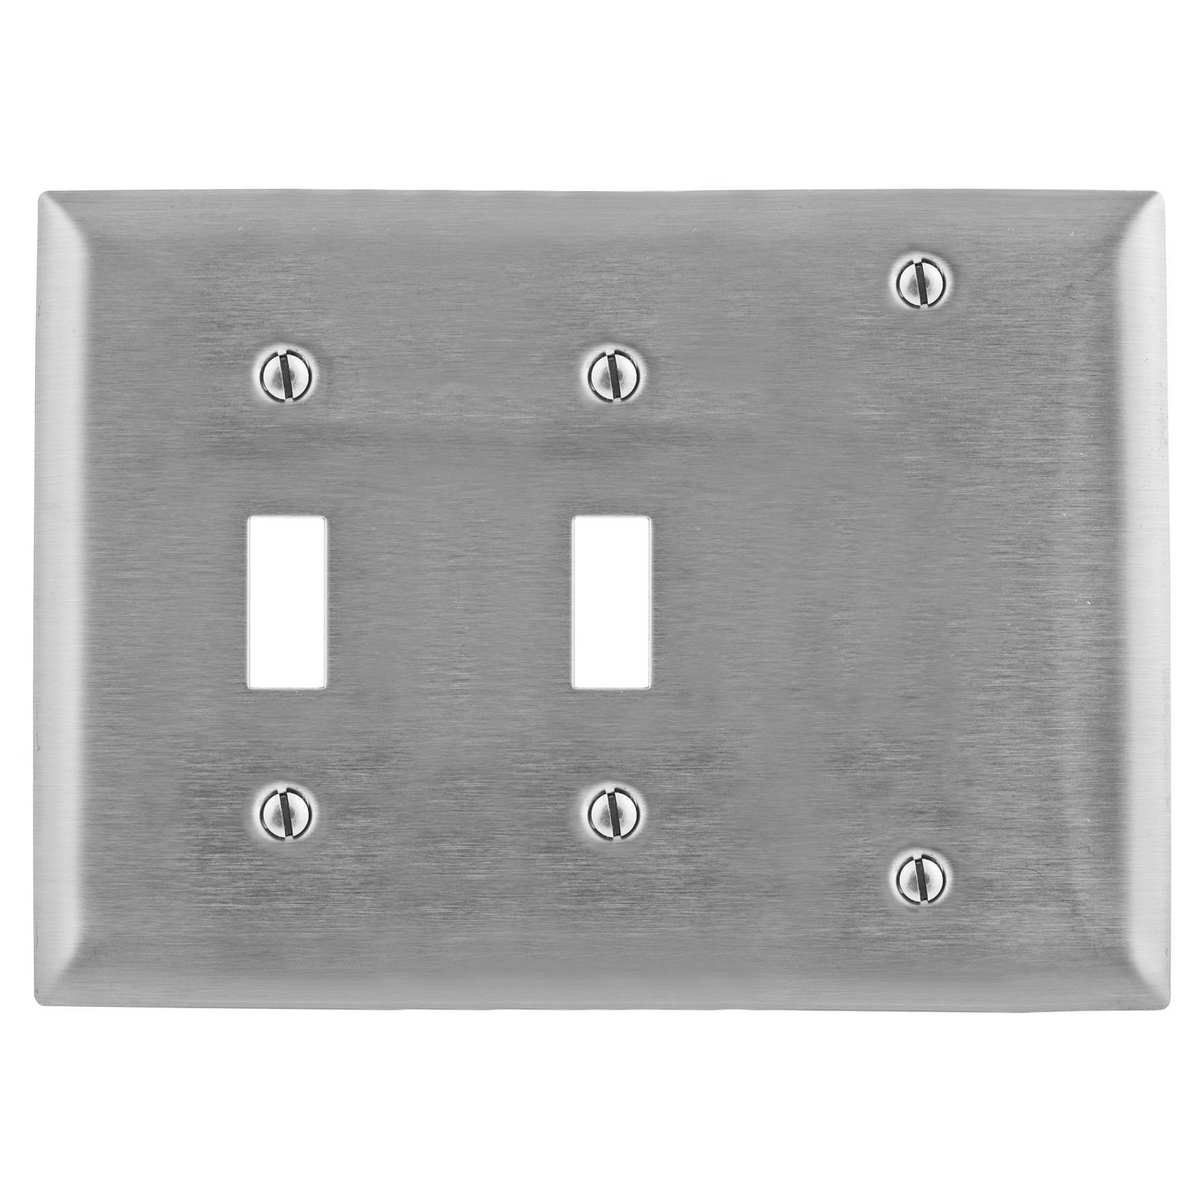 Hubbell SS213 3-Gang Stainless Steel 1-Blank 2-Toggle Switch Screw Mount Combination Wallplate